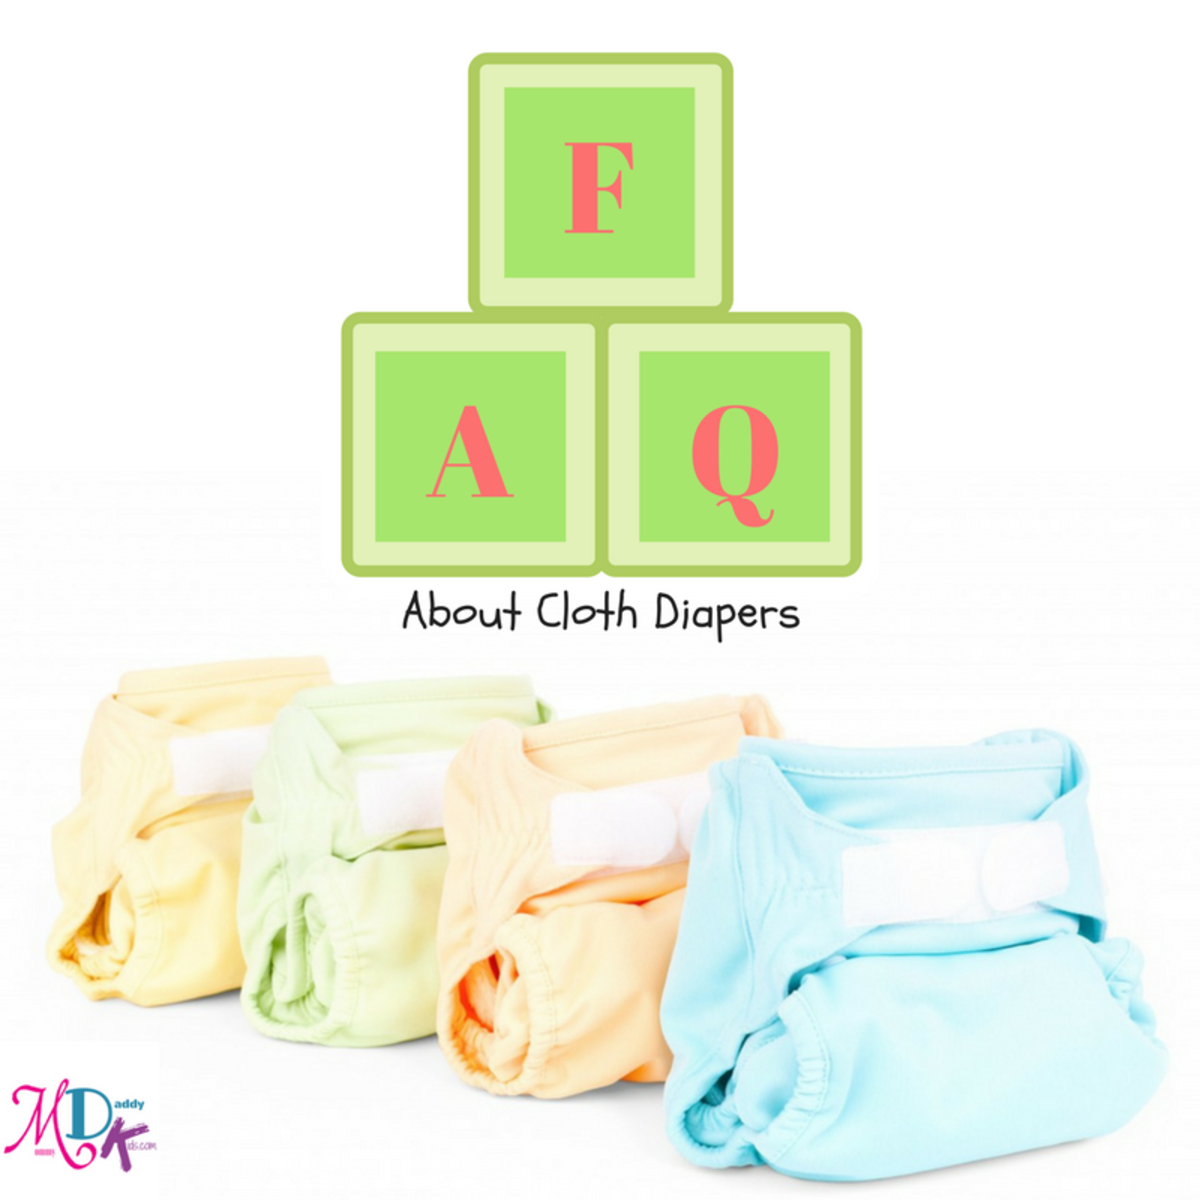 Cloth Diapers 101: How to Use, How to Clean, and More!